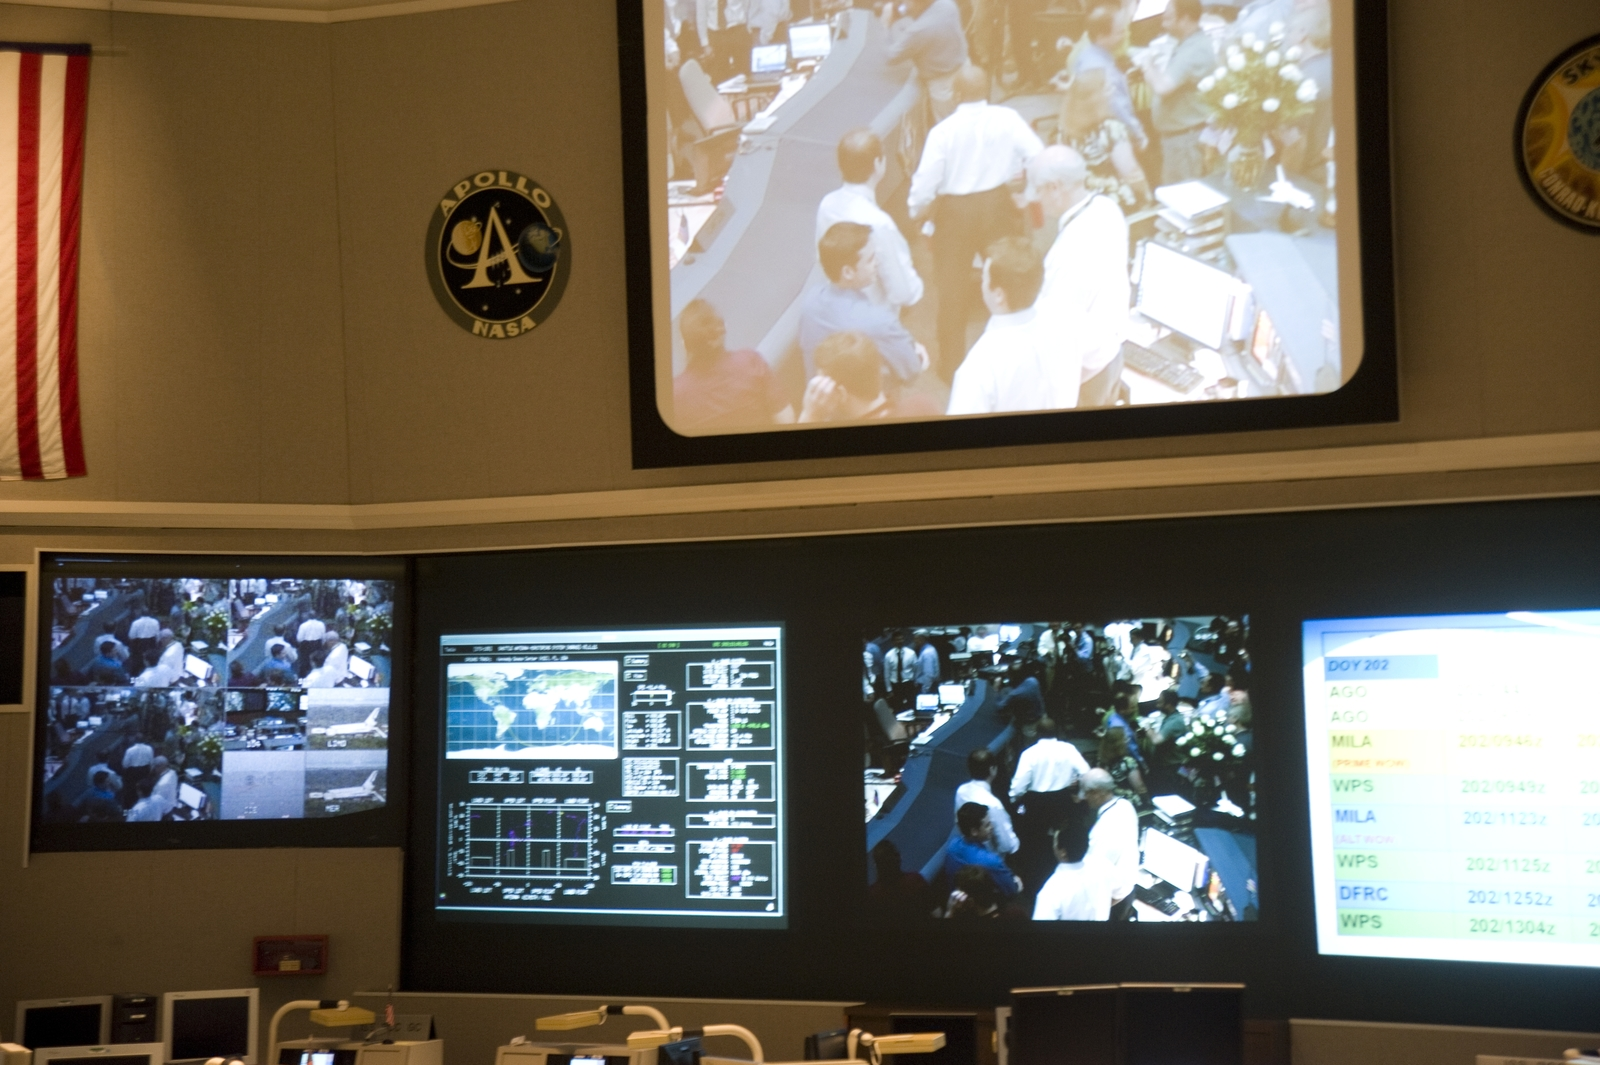 SPACE SHUTTLE STS-135 LANDING EVENTS AT GODDARD SPACE FLIGHT CENTER